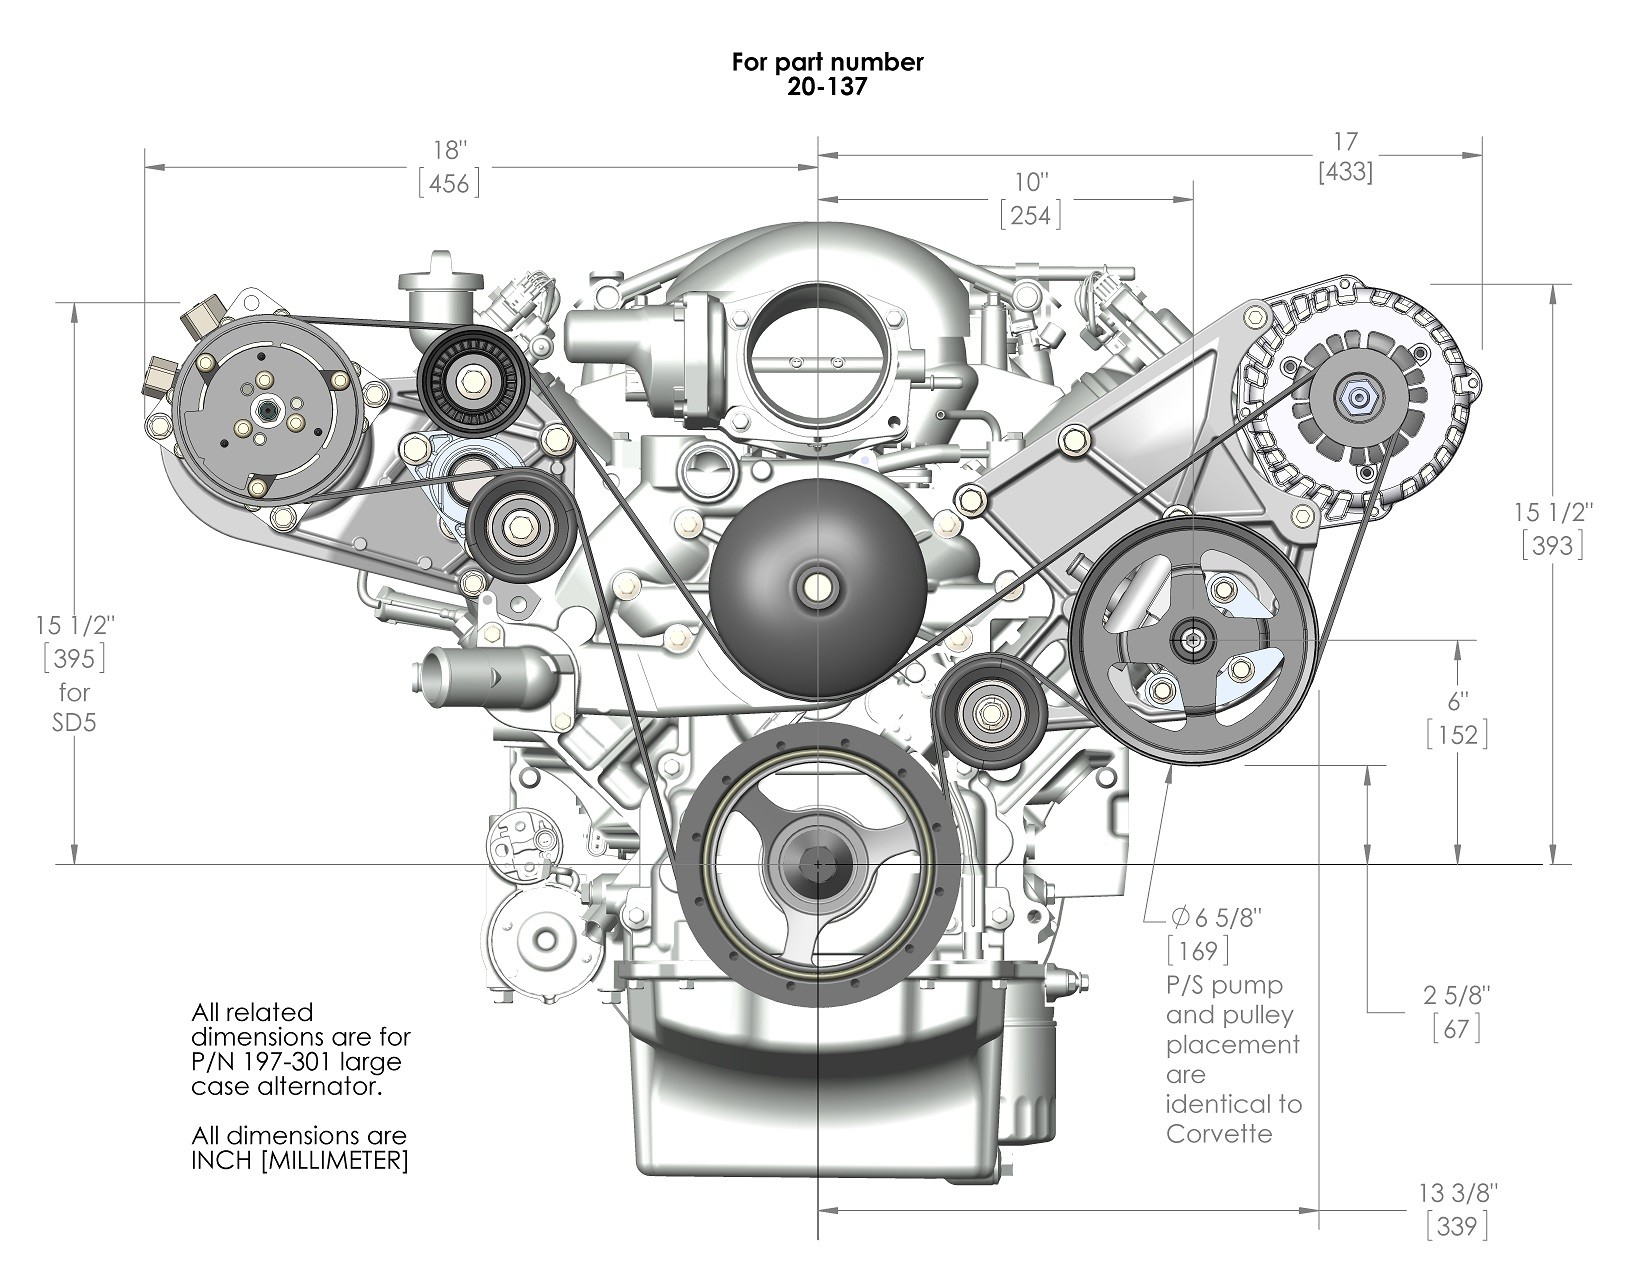 3 1 Liter V6 Engine Diagram 2004 Mazda 6 Wiring 20 137 Dimensions1 16501275 Ls Engines Pinterest Of